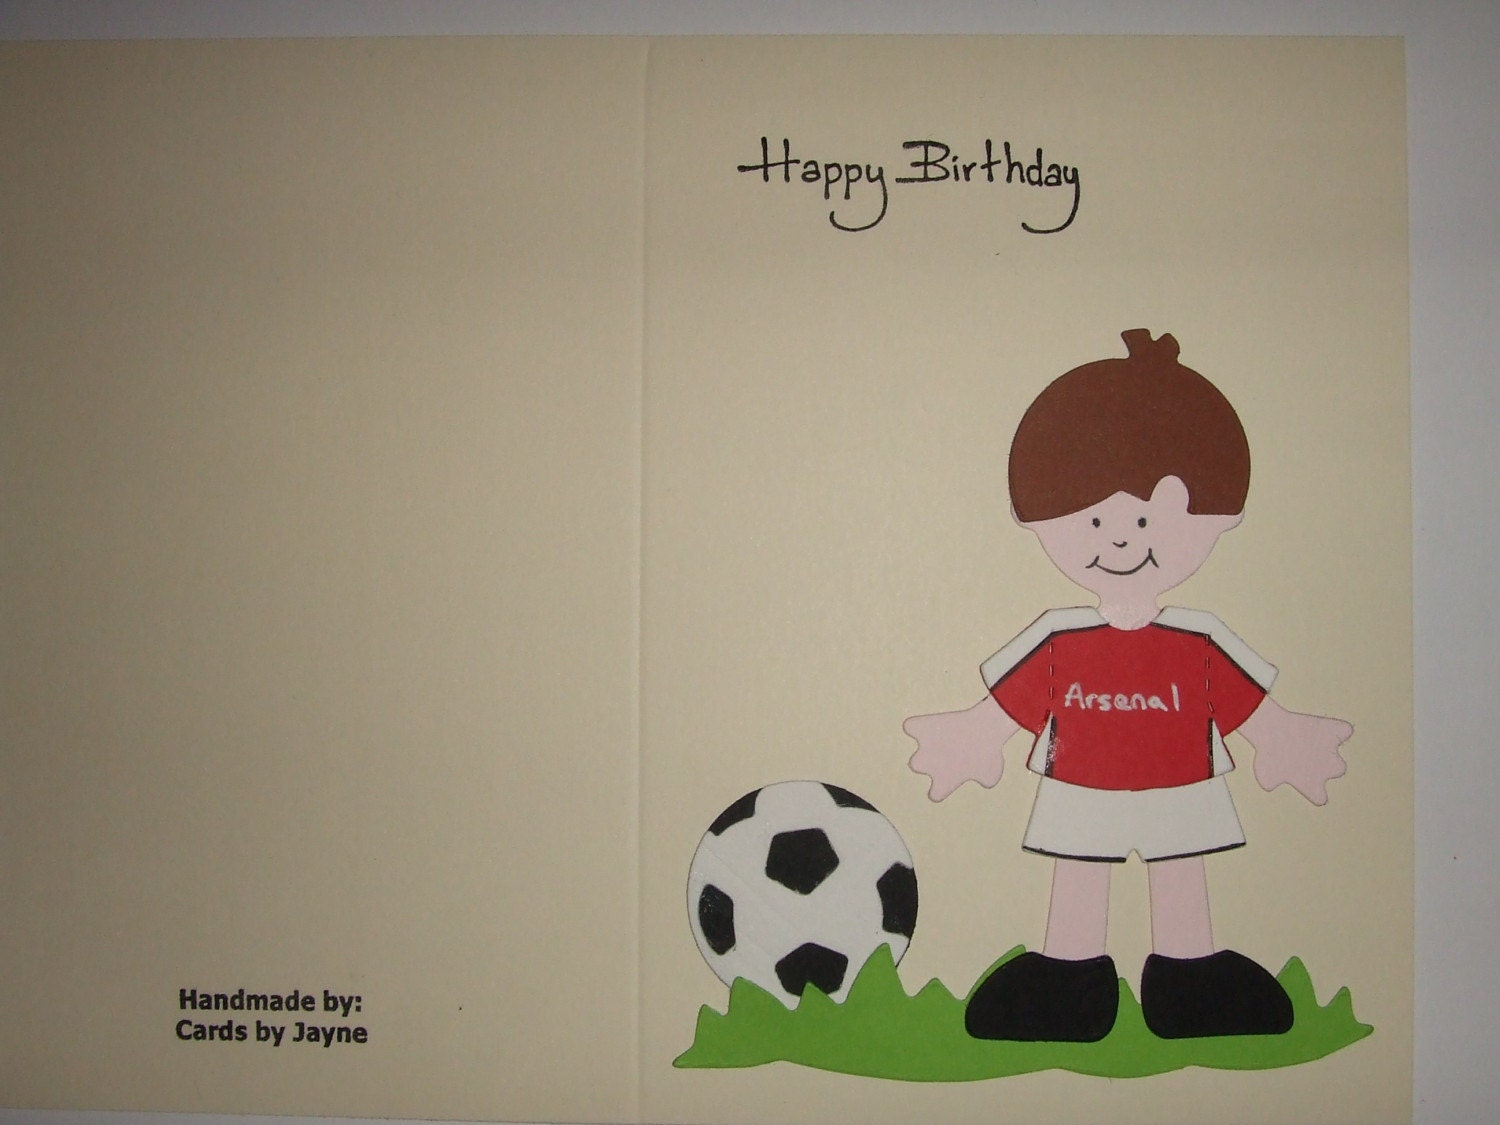 People who have favorited Birthday Card with Footballer in Arsenal ...